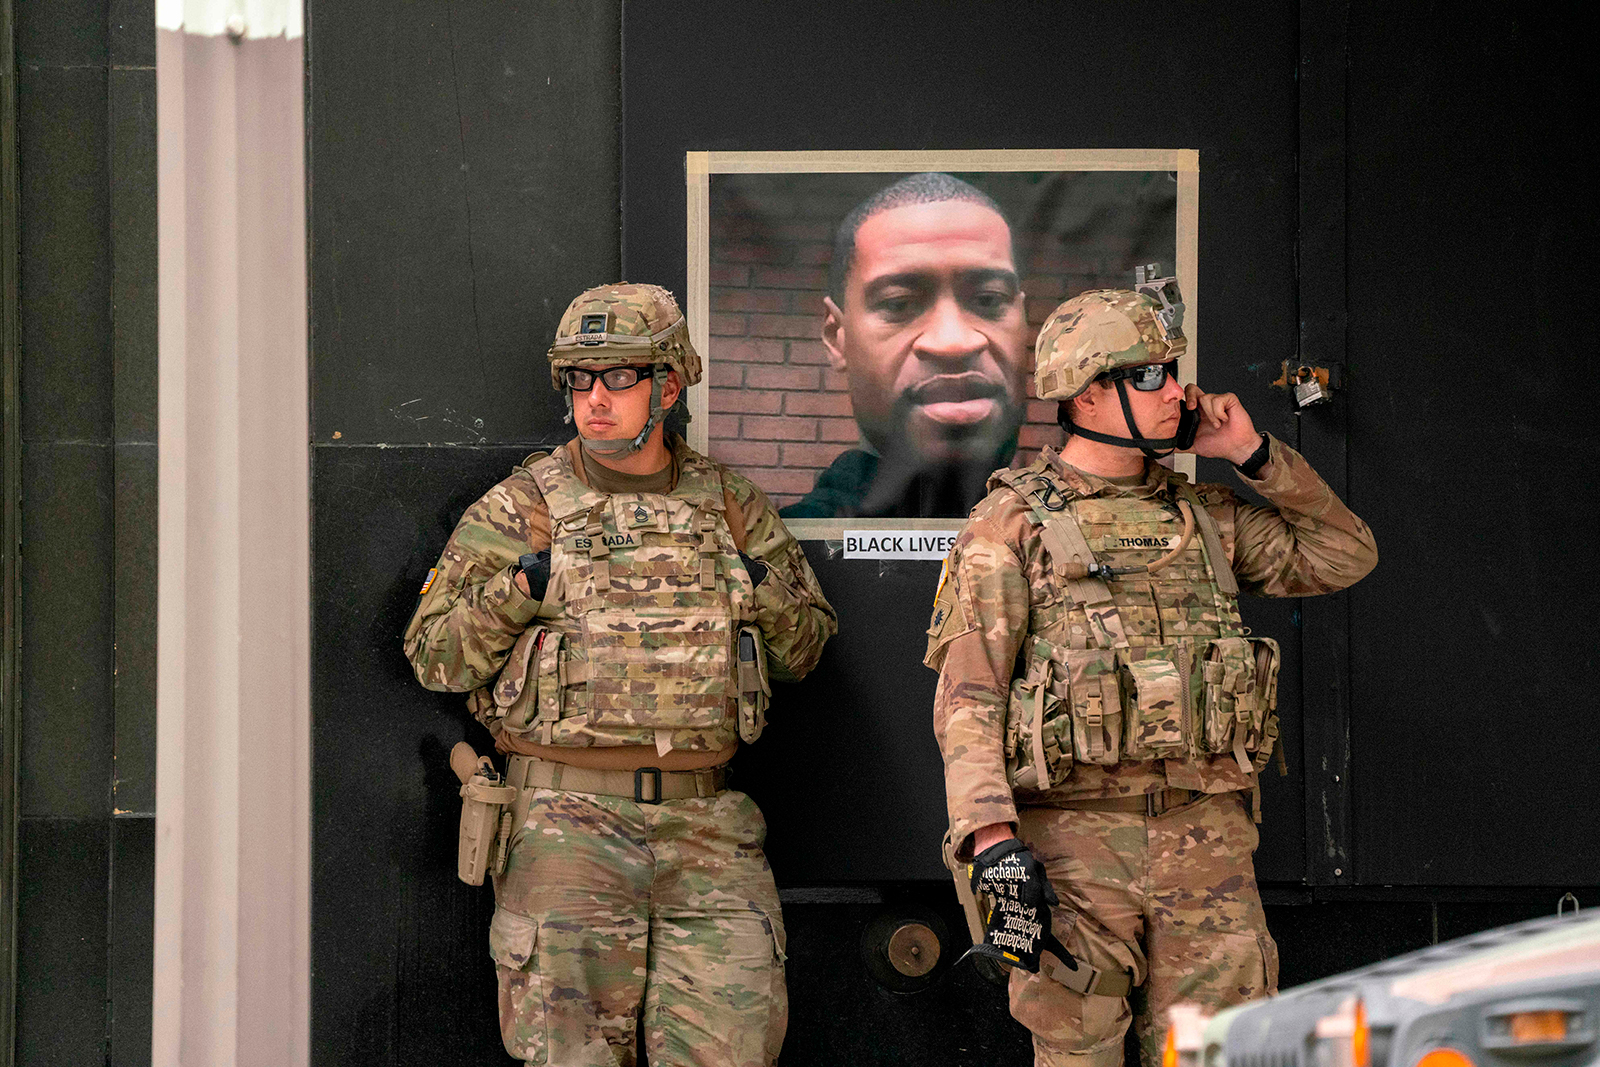 California National Guard soldiers stand near a portrait of George Floyd during a demonstration in downtown Los Angeles, on June 6.